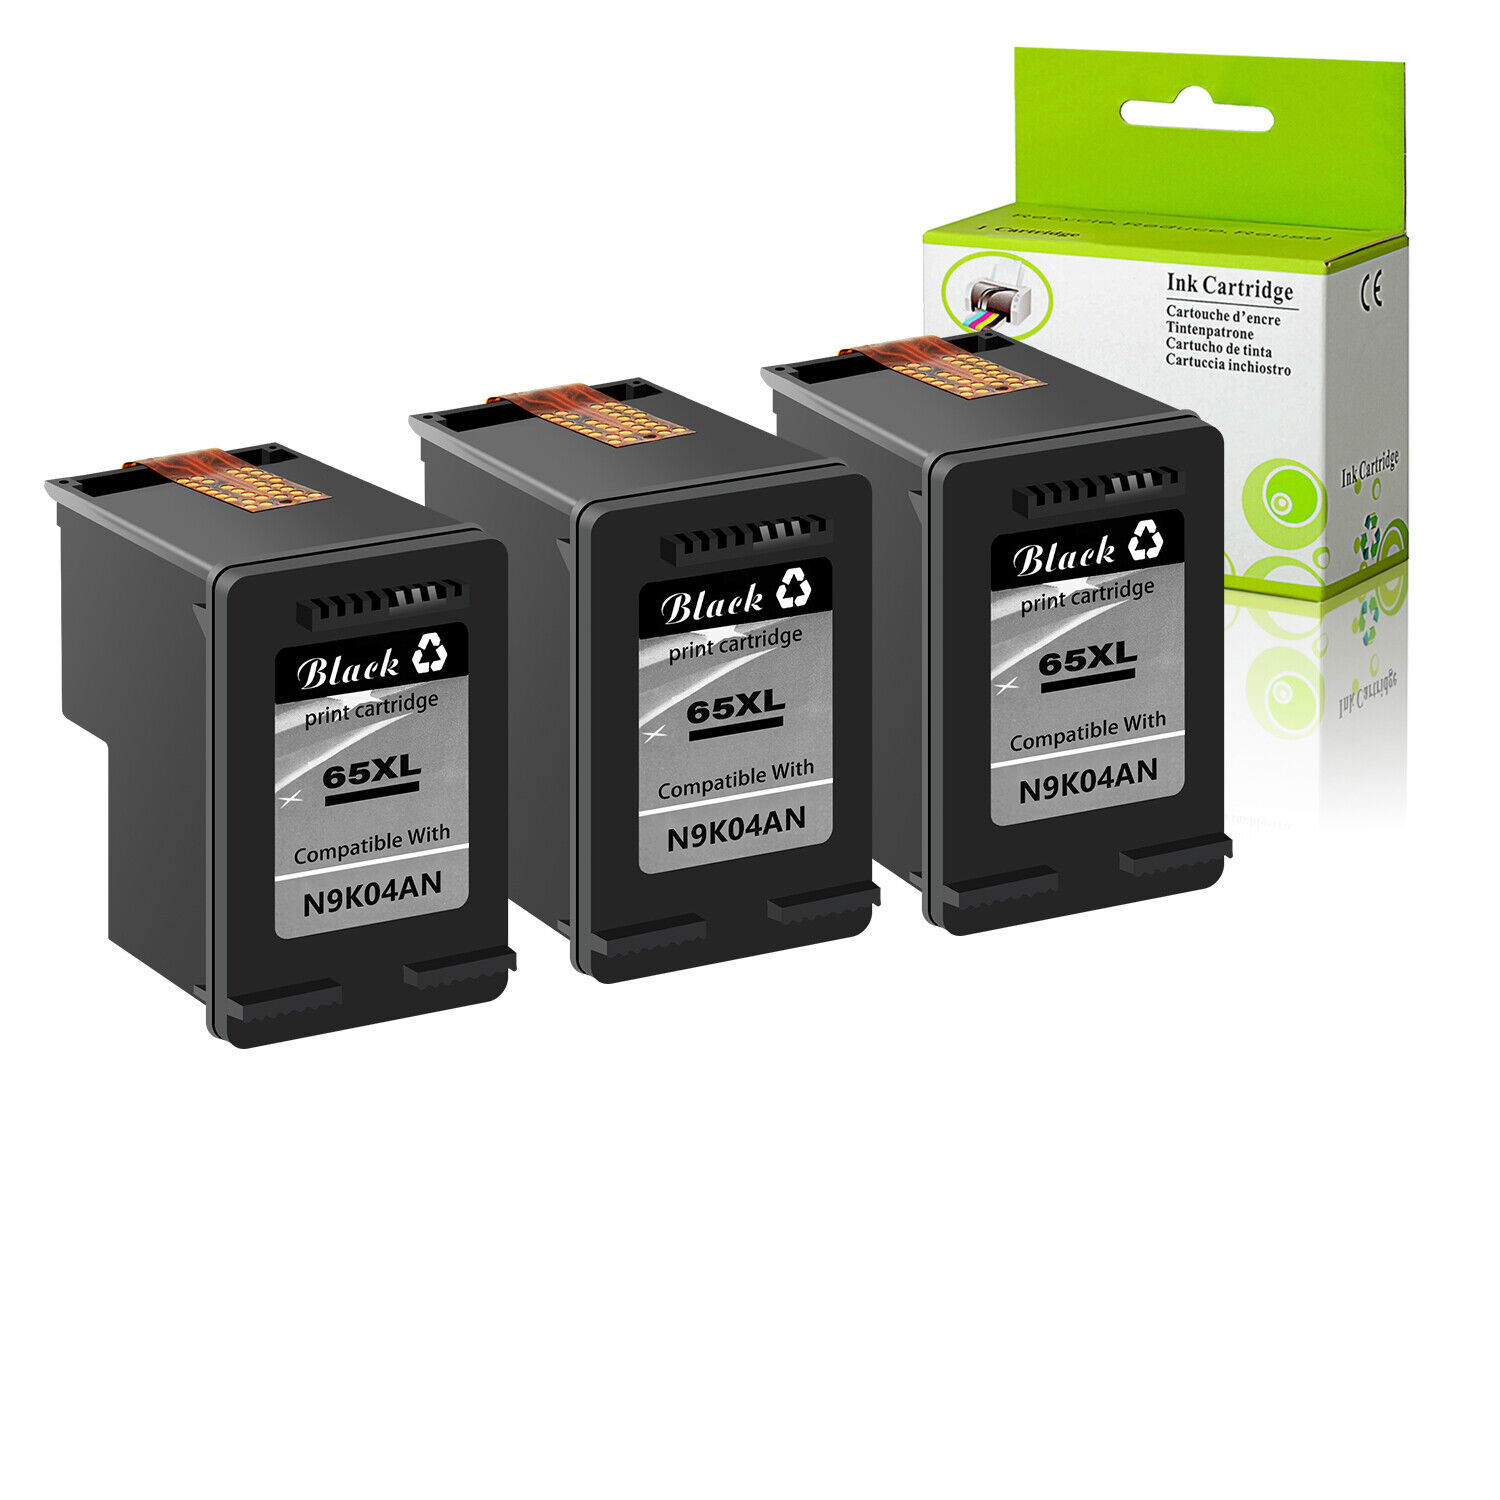 3PK 65XL high yield Black Ink Cartridge for HP DeskJet ...